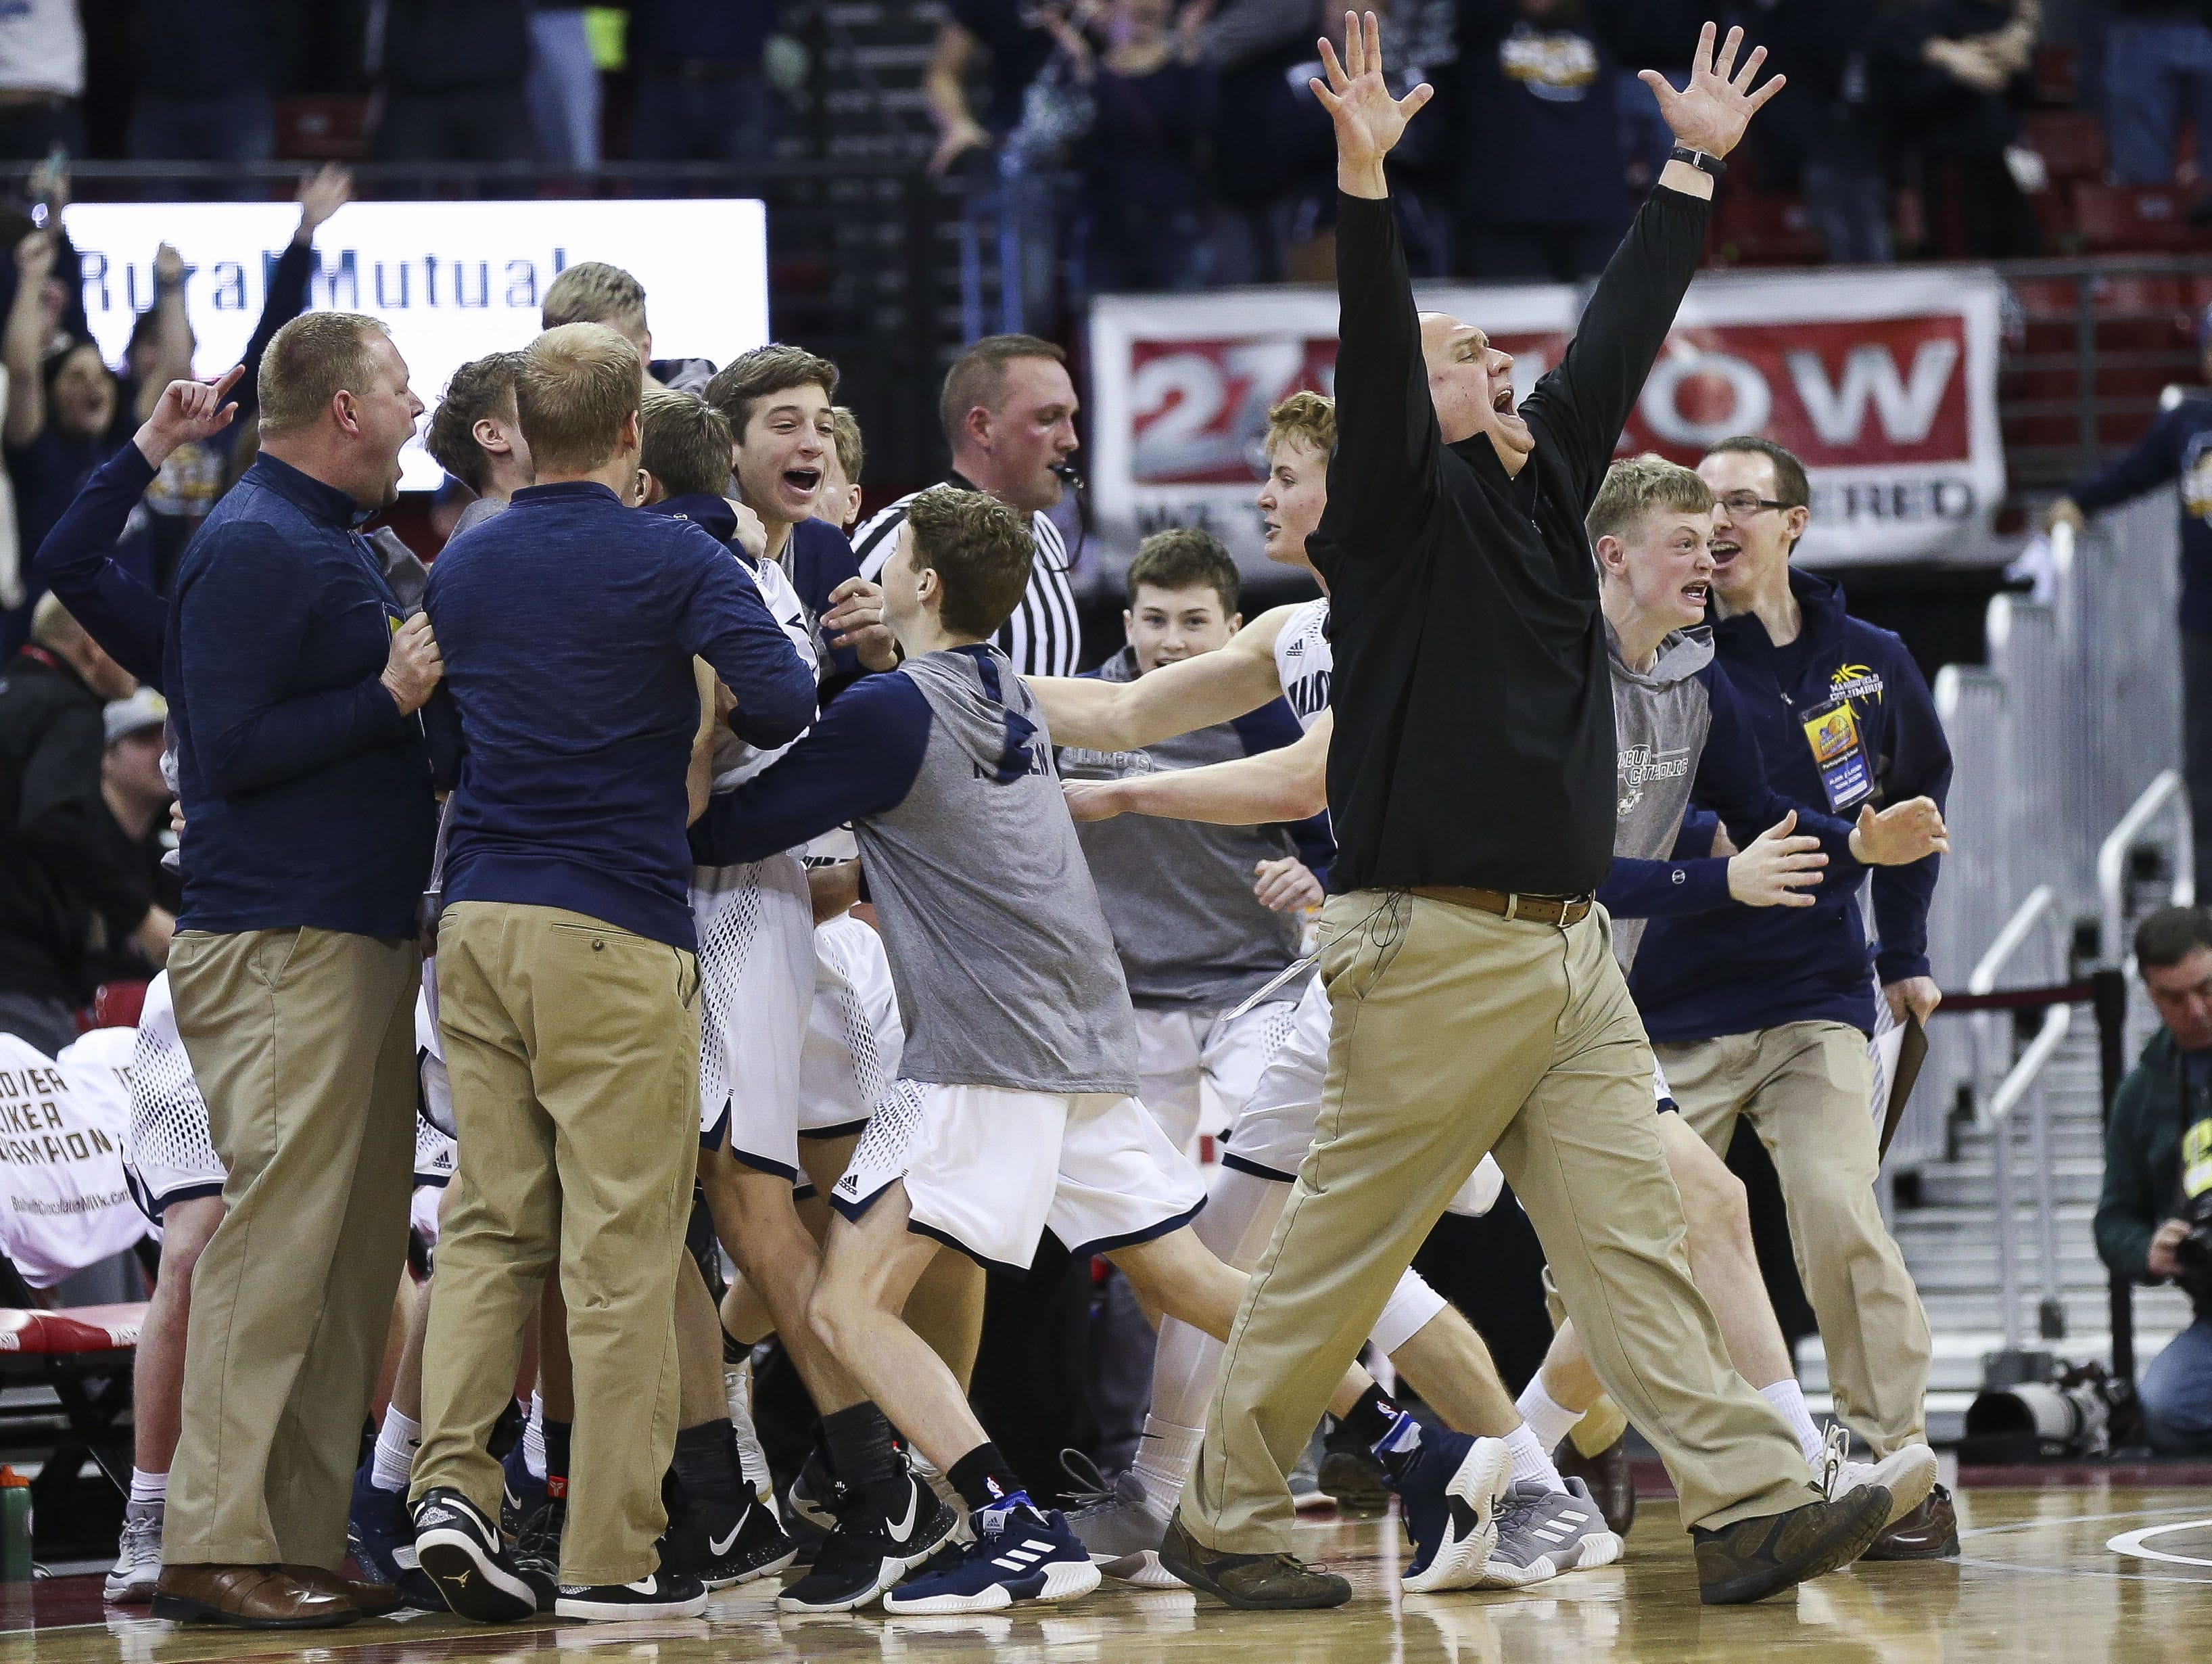 Columbus Catholic High School head coach Joe Kinieczny celebrates after a buzzer-beater 3-pointer by Tom Nystrom to beat Bangor High School, 69-66, a Division 5 boys basketball state semifinal on Friday, March 15, 2019, at the Kohl Center in Madison, Wis. Tork Mason/USA TODAY NETWORK-Wisconsin